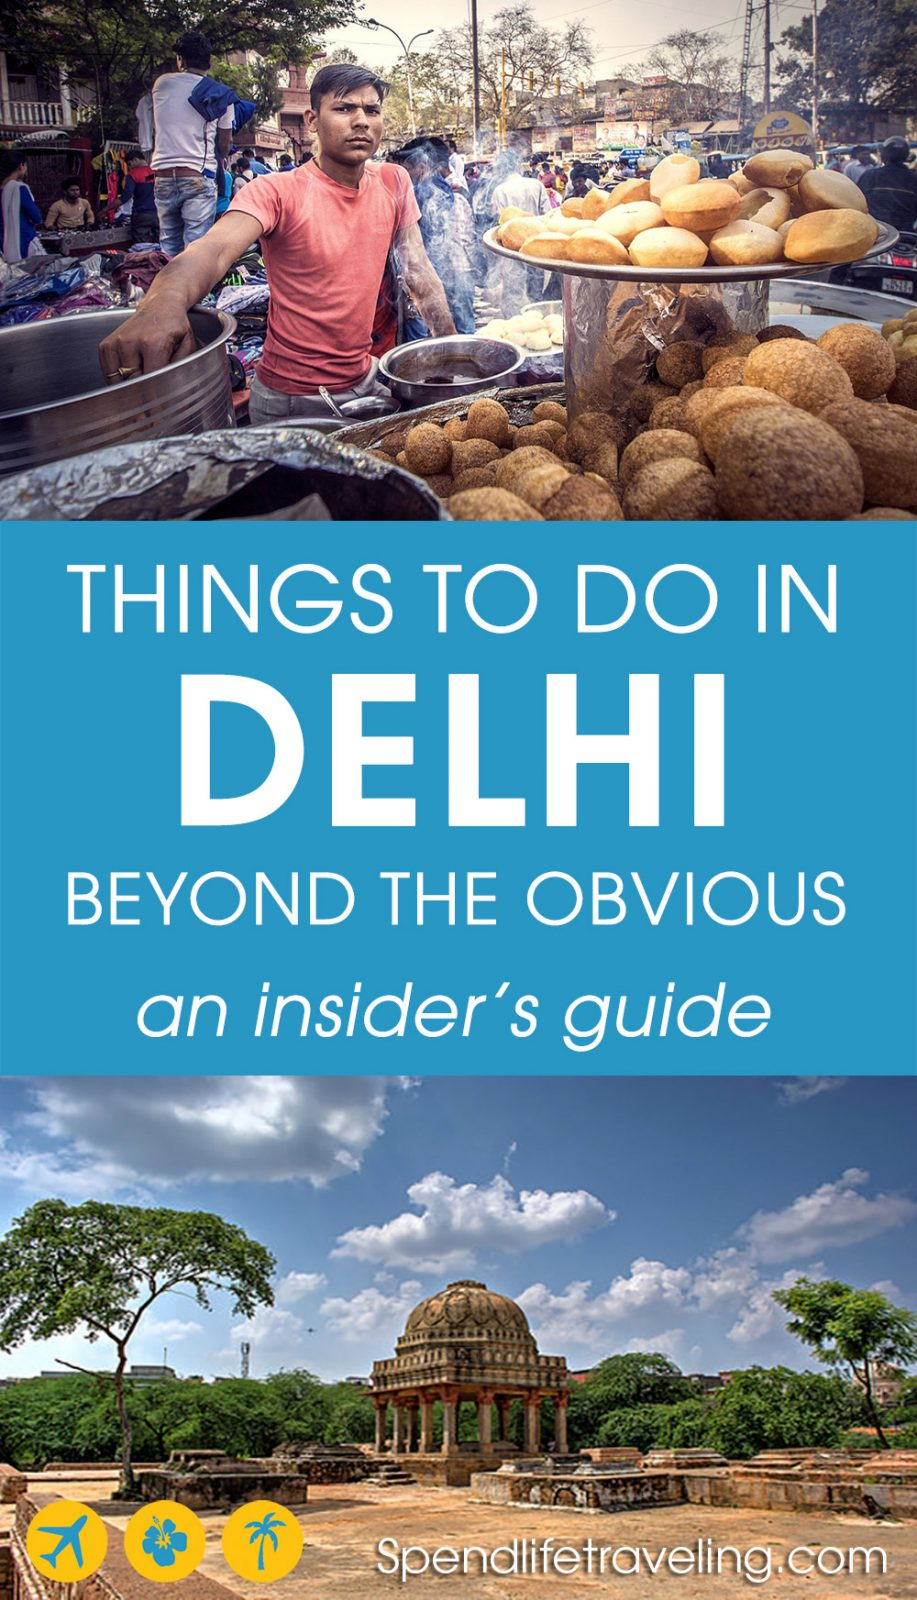 Are you traveling to Delhi, India? Check out this insider's travel guide with tips on what to see and do in Delhi beyond the obvious tourist attractions you find in every travel guide. #Delhi #incredibleIndia #visitIndia